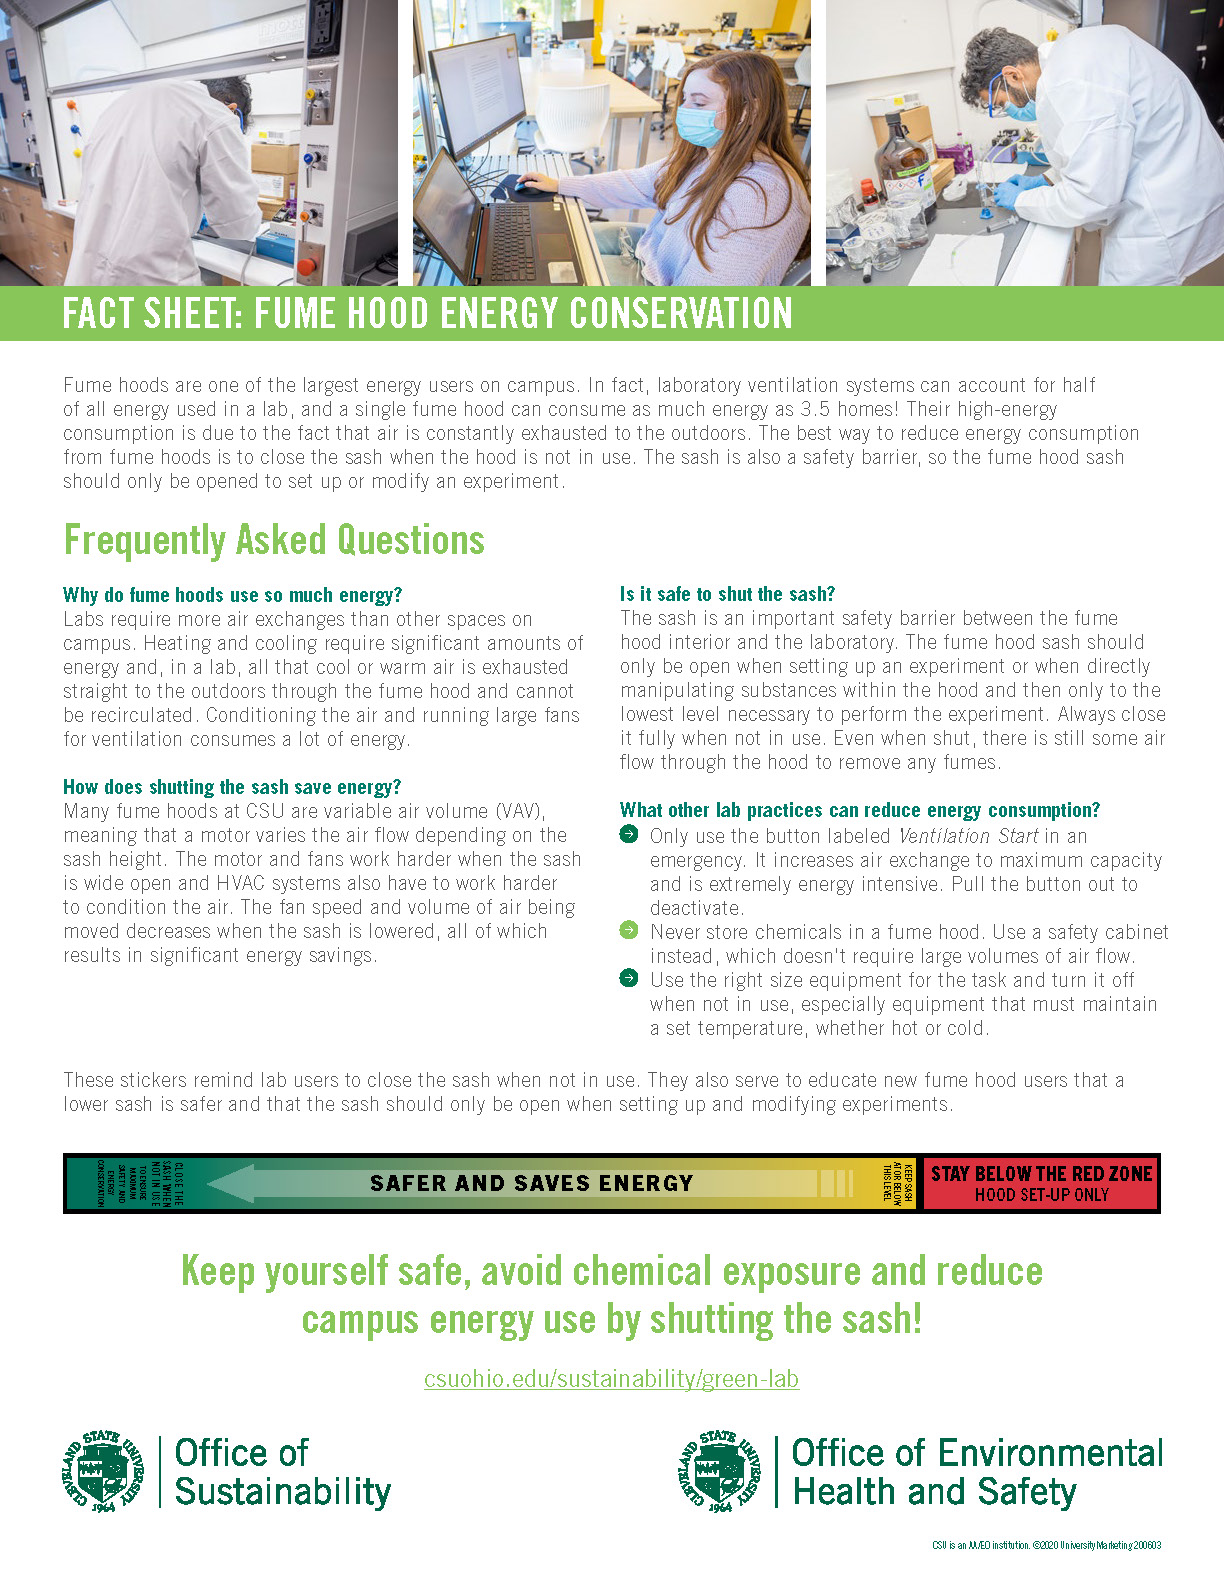 Shut the Sash - Fume Hoods and Energy Conservation Fact Sheet